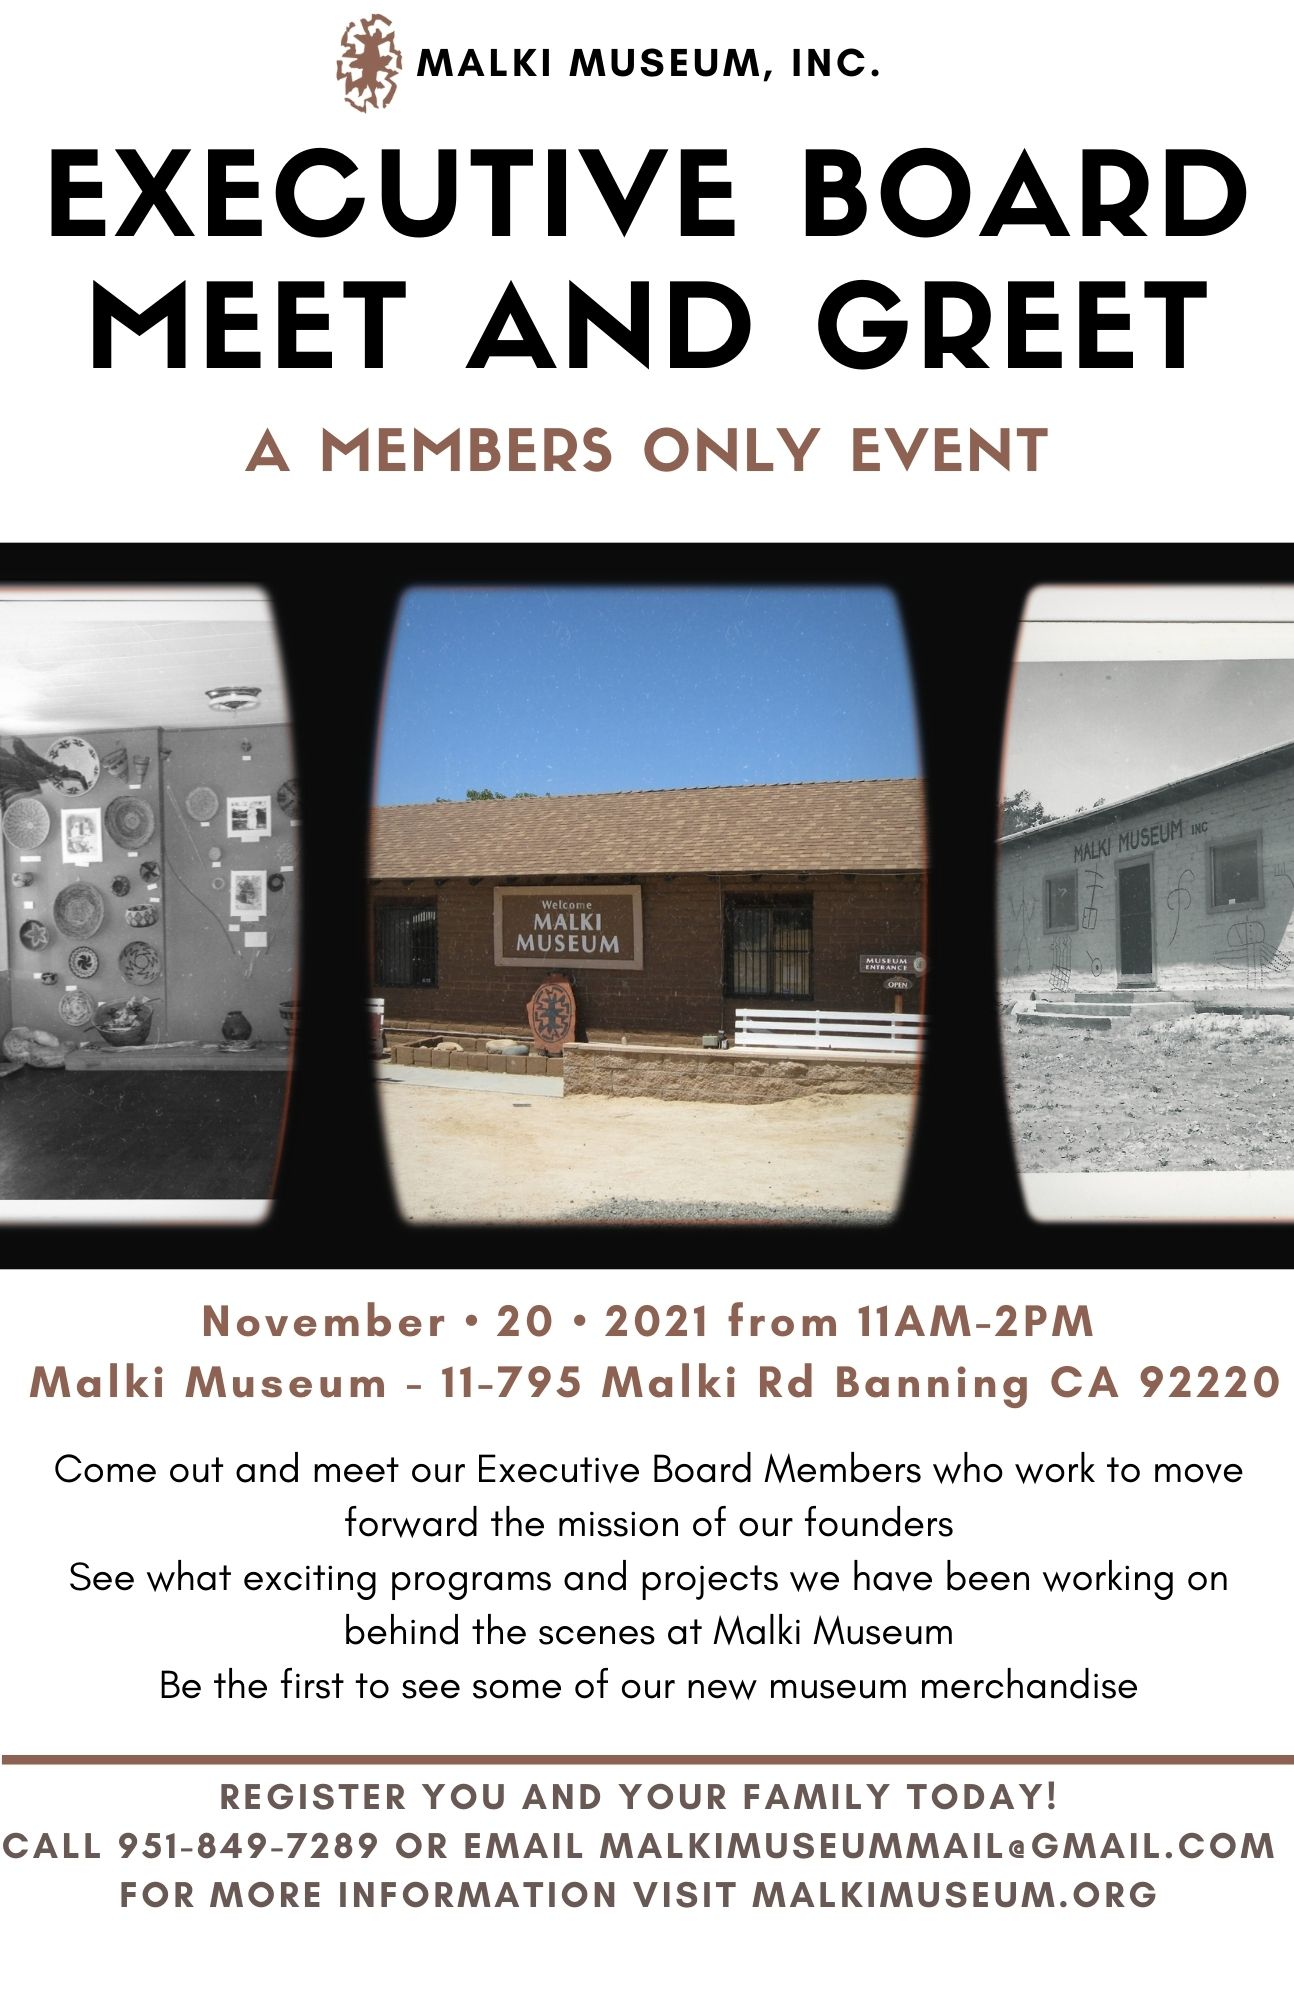 Members Only Event!